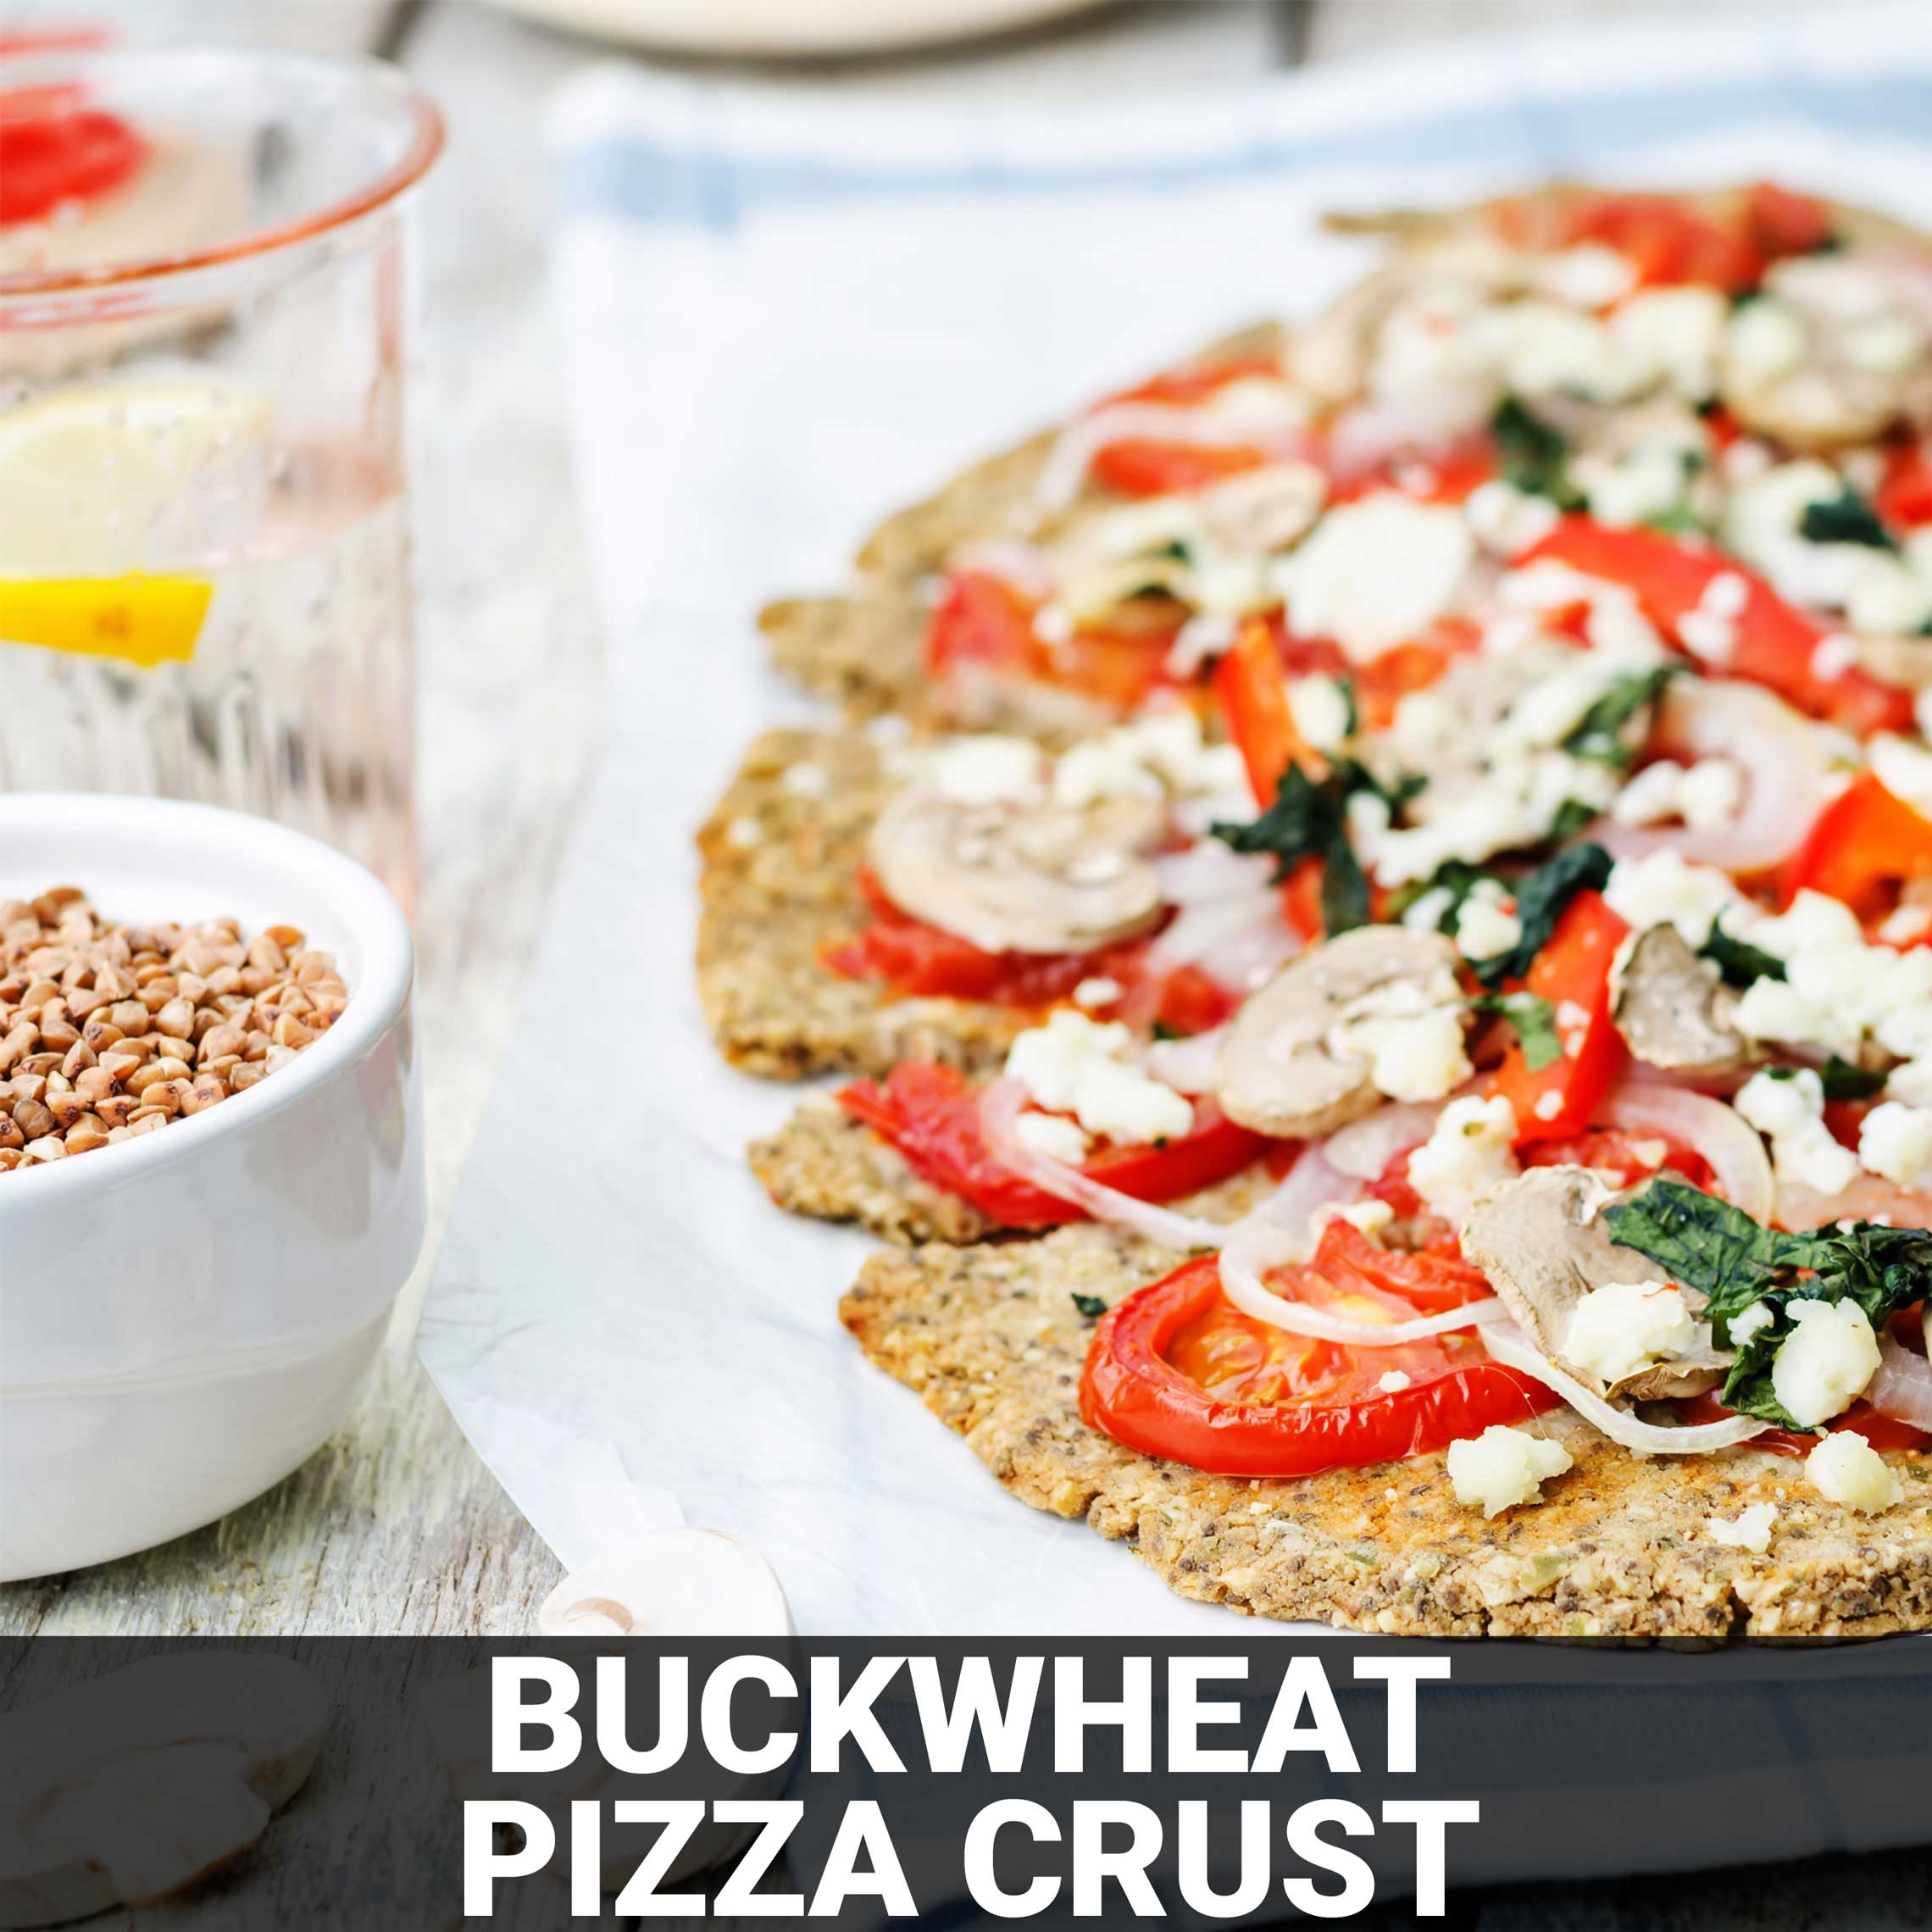 Buckwheat Pizza Crust Recipe - Foods Alive